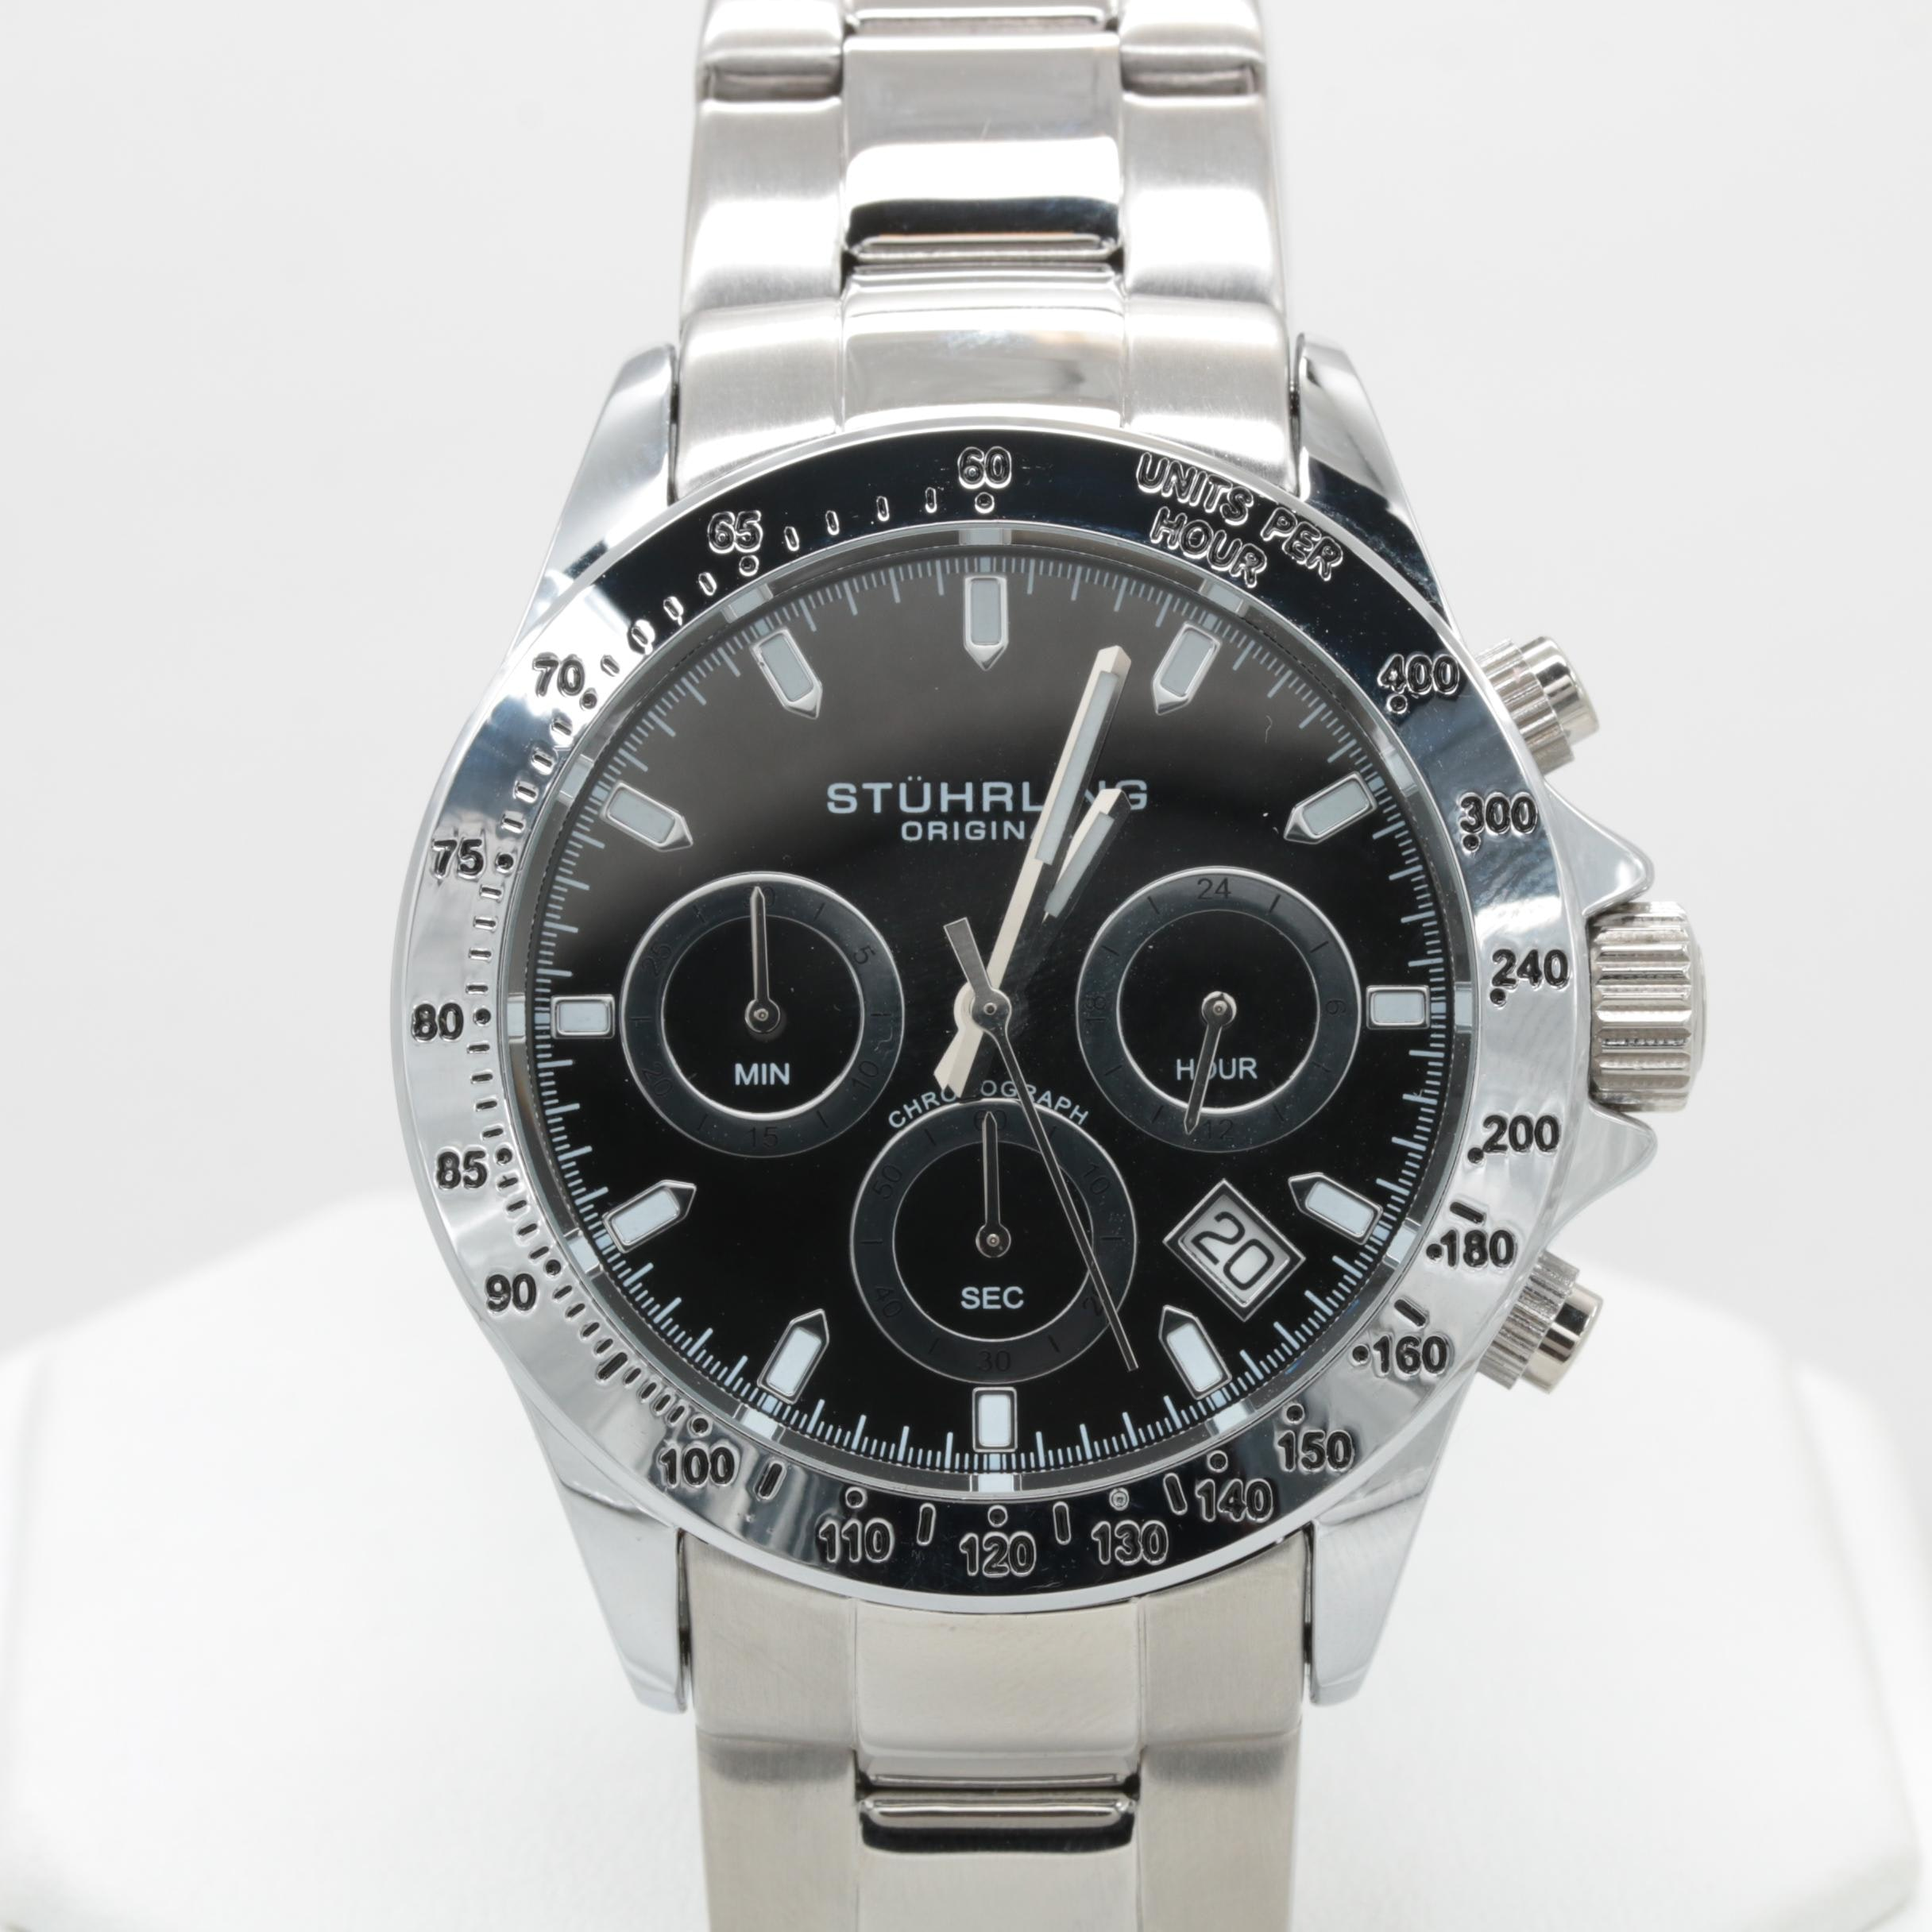 Stuhrling Stainless Steel Black Dial Wristwatch with Date Window